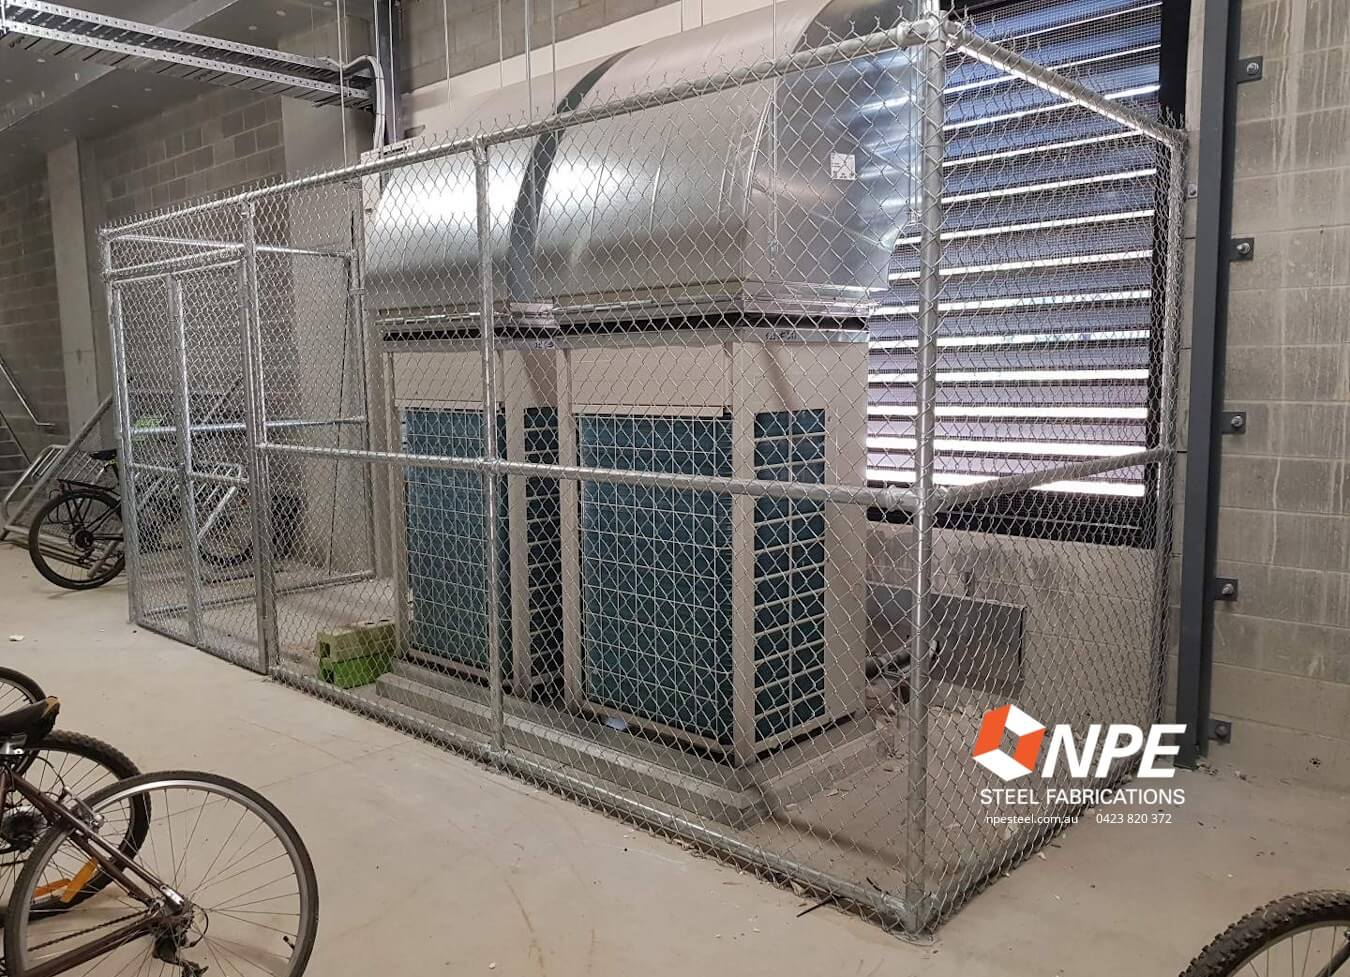 Fencing around part of a commercial / larger residential air conditioning system.